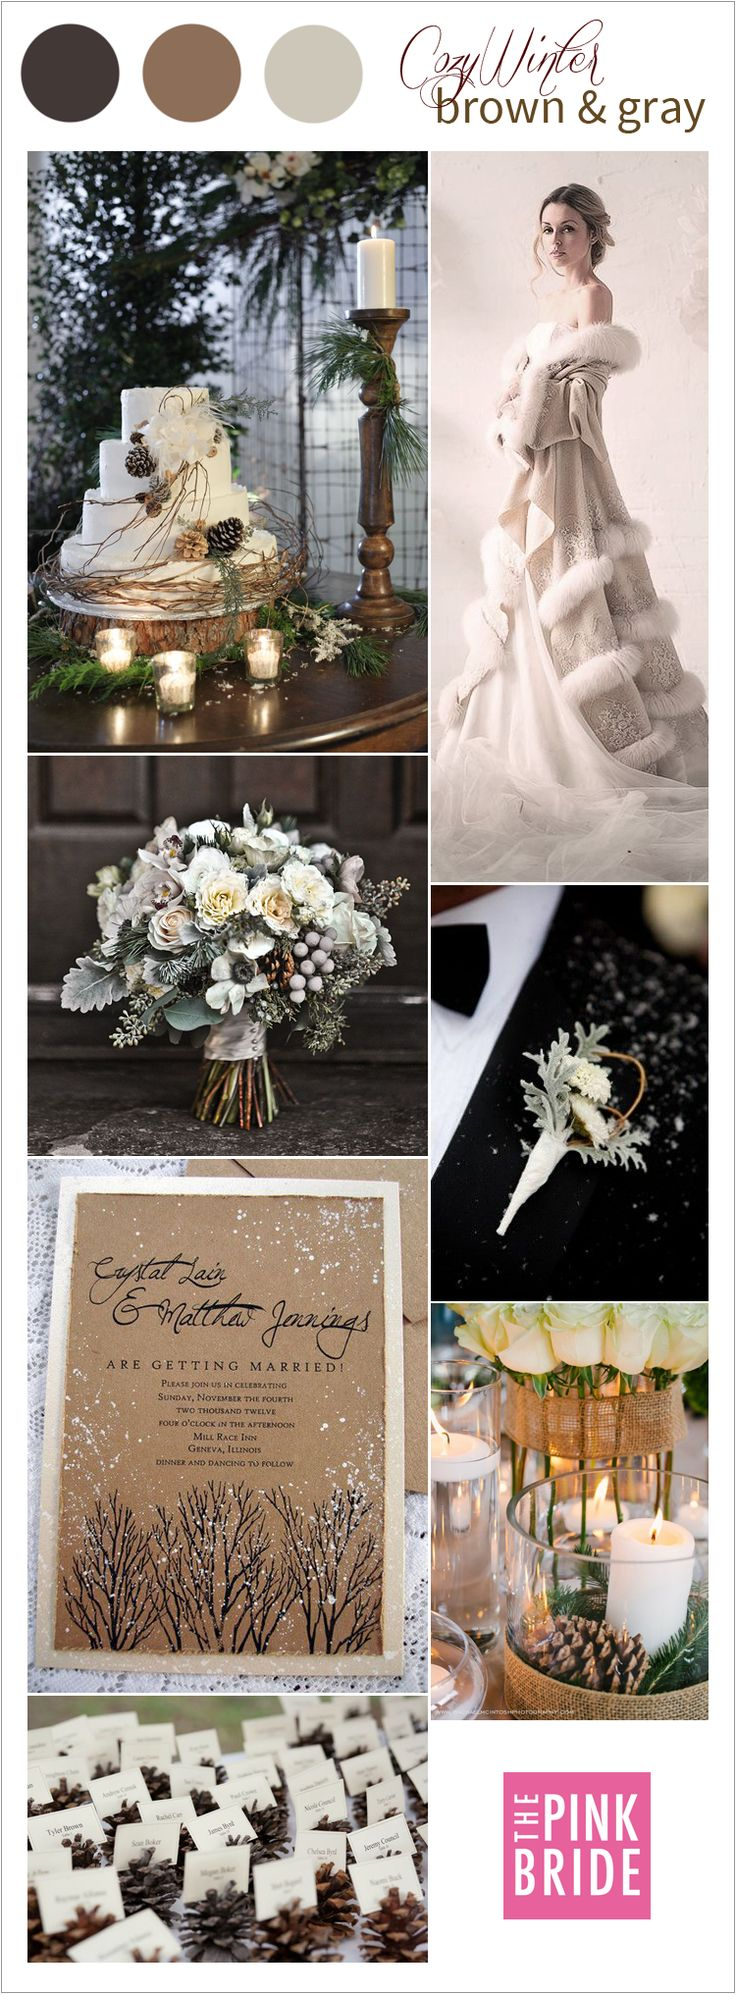 Cozy winter wedding color palette inspiration board with cream, brown, and gray colors | The Pink Bride www.thepinkbride.com